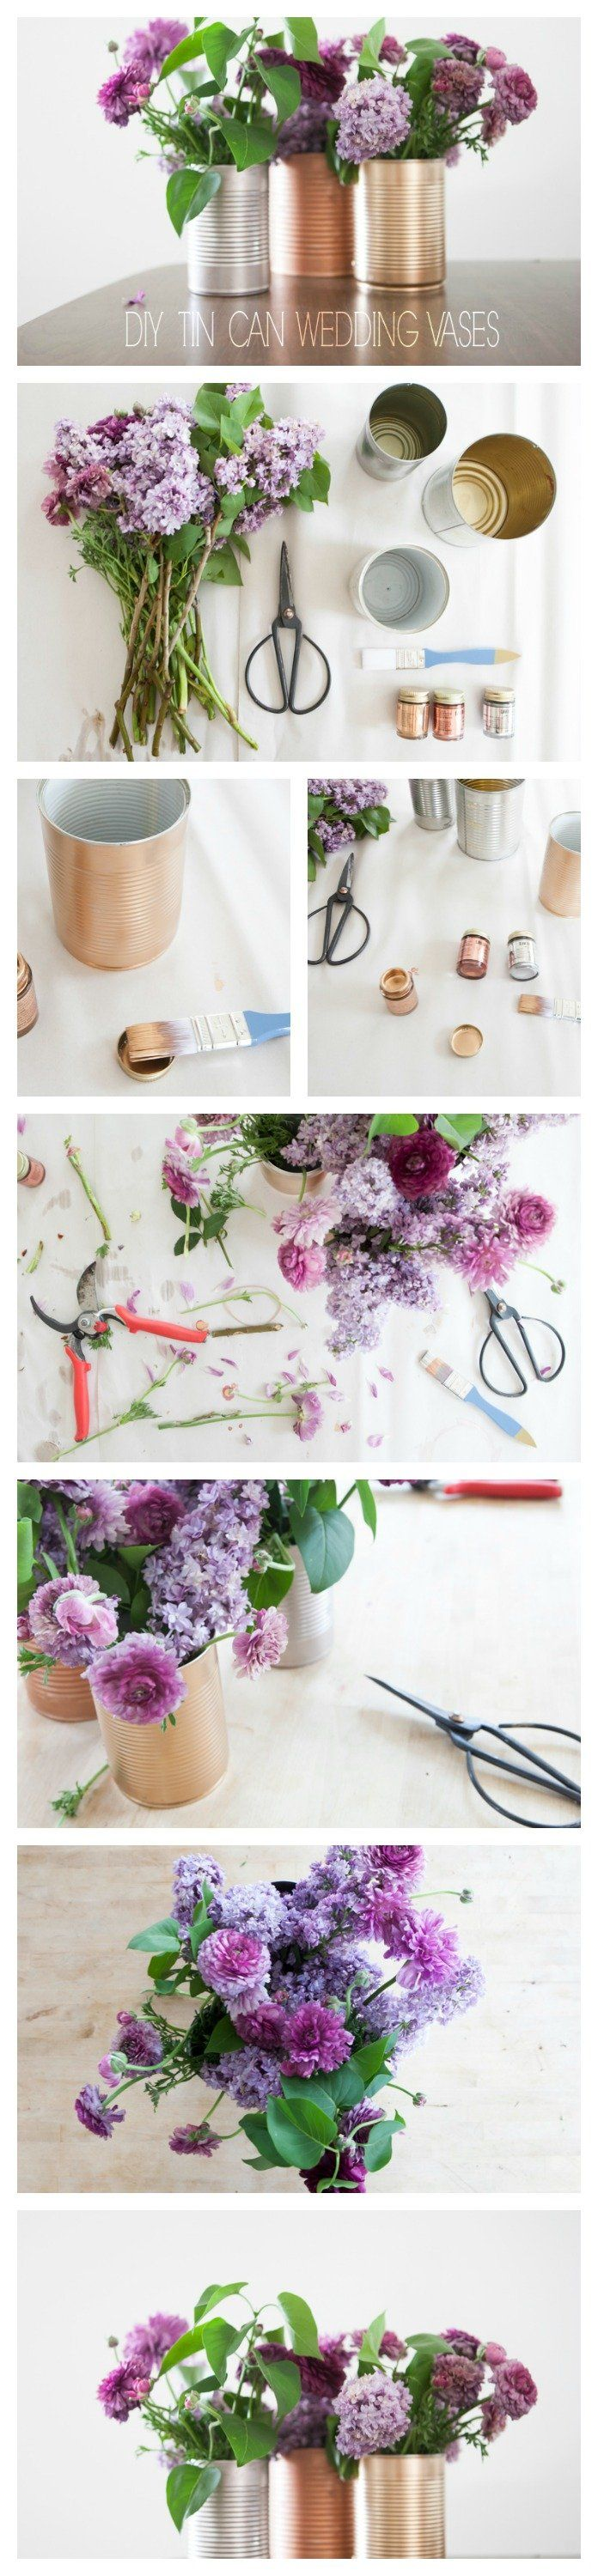 best DIY Wedding Ideas images on Pinterest  Wedding ideas